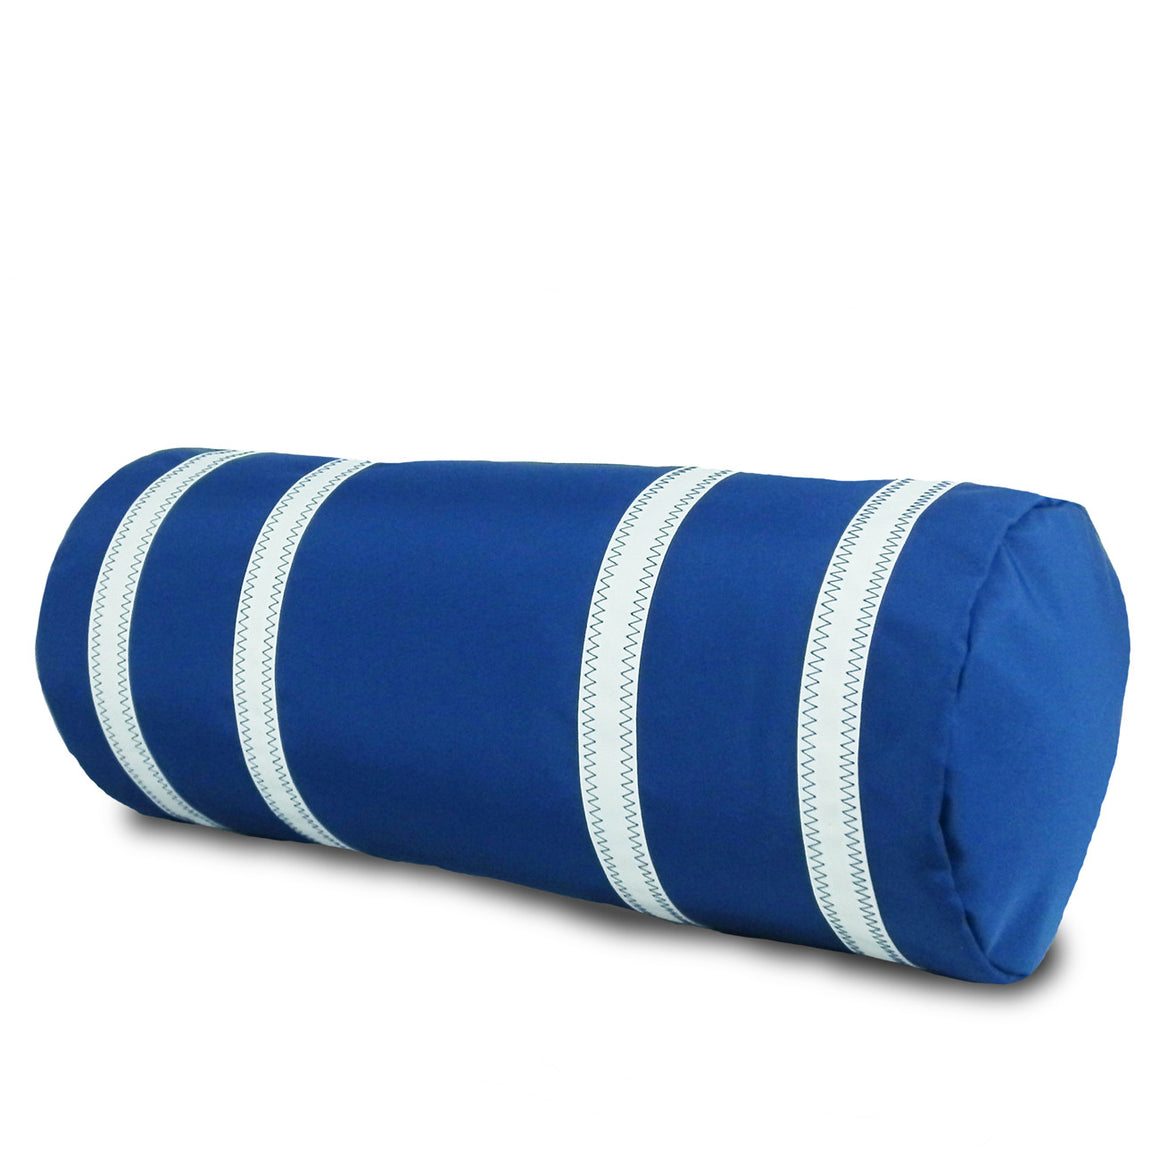 Nautical Stripes Bolster Pillow Cover with Insert by SailorBags Nautical Blue w/ White Stripes